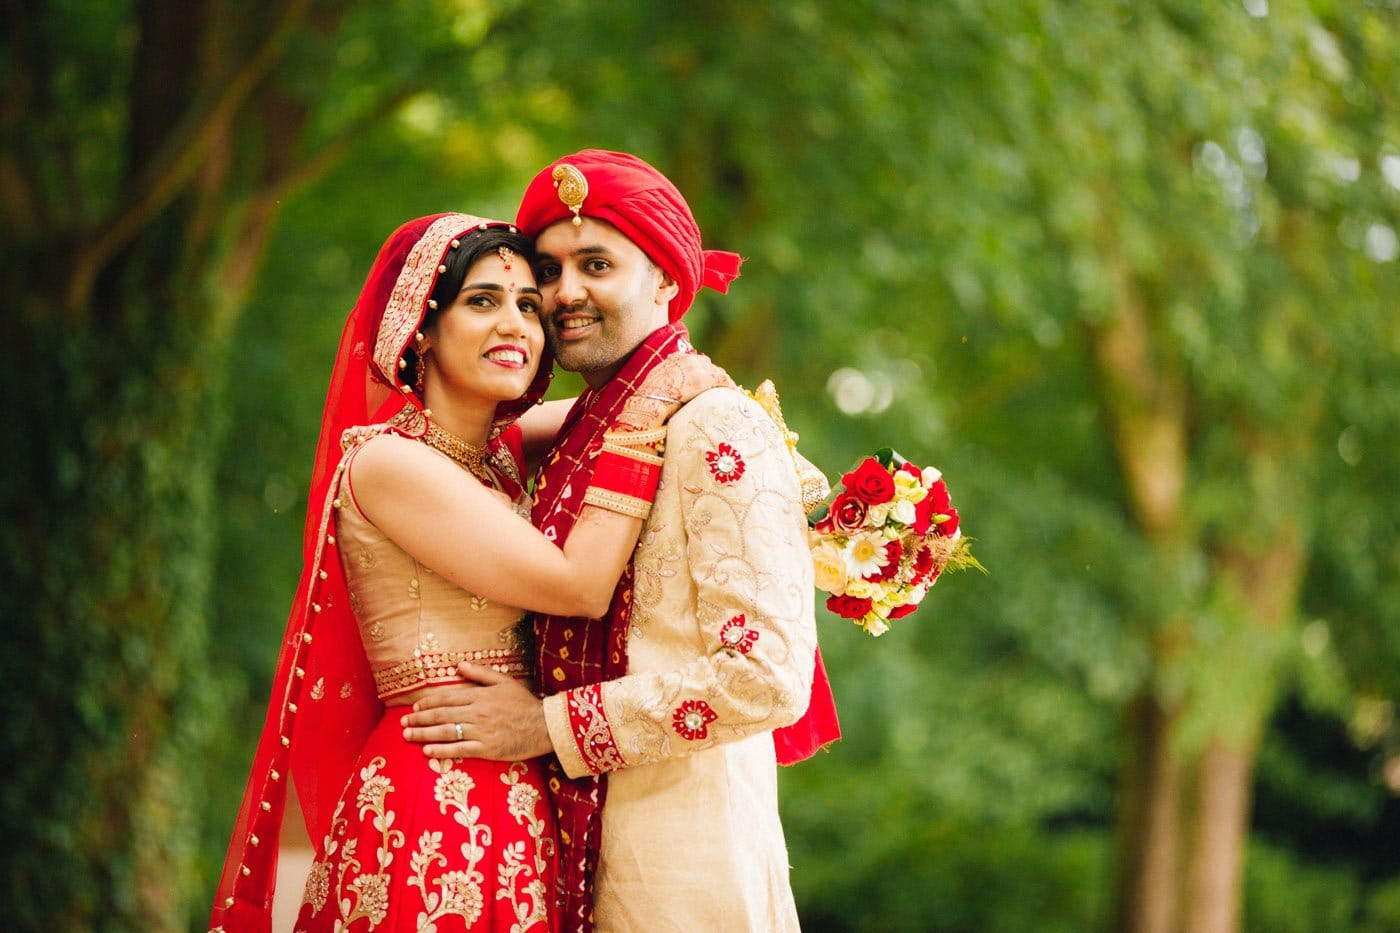 Hindu Wedding Photography and Video at Scalford Hall // Aanchel & Vinesh